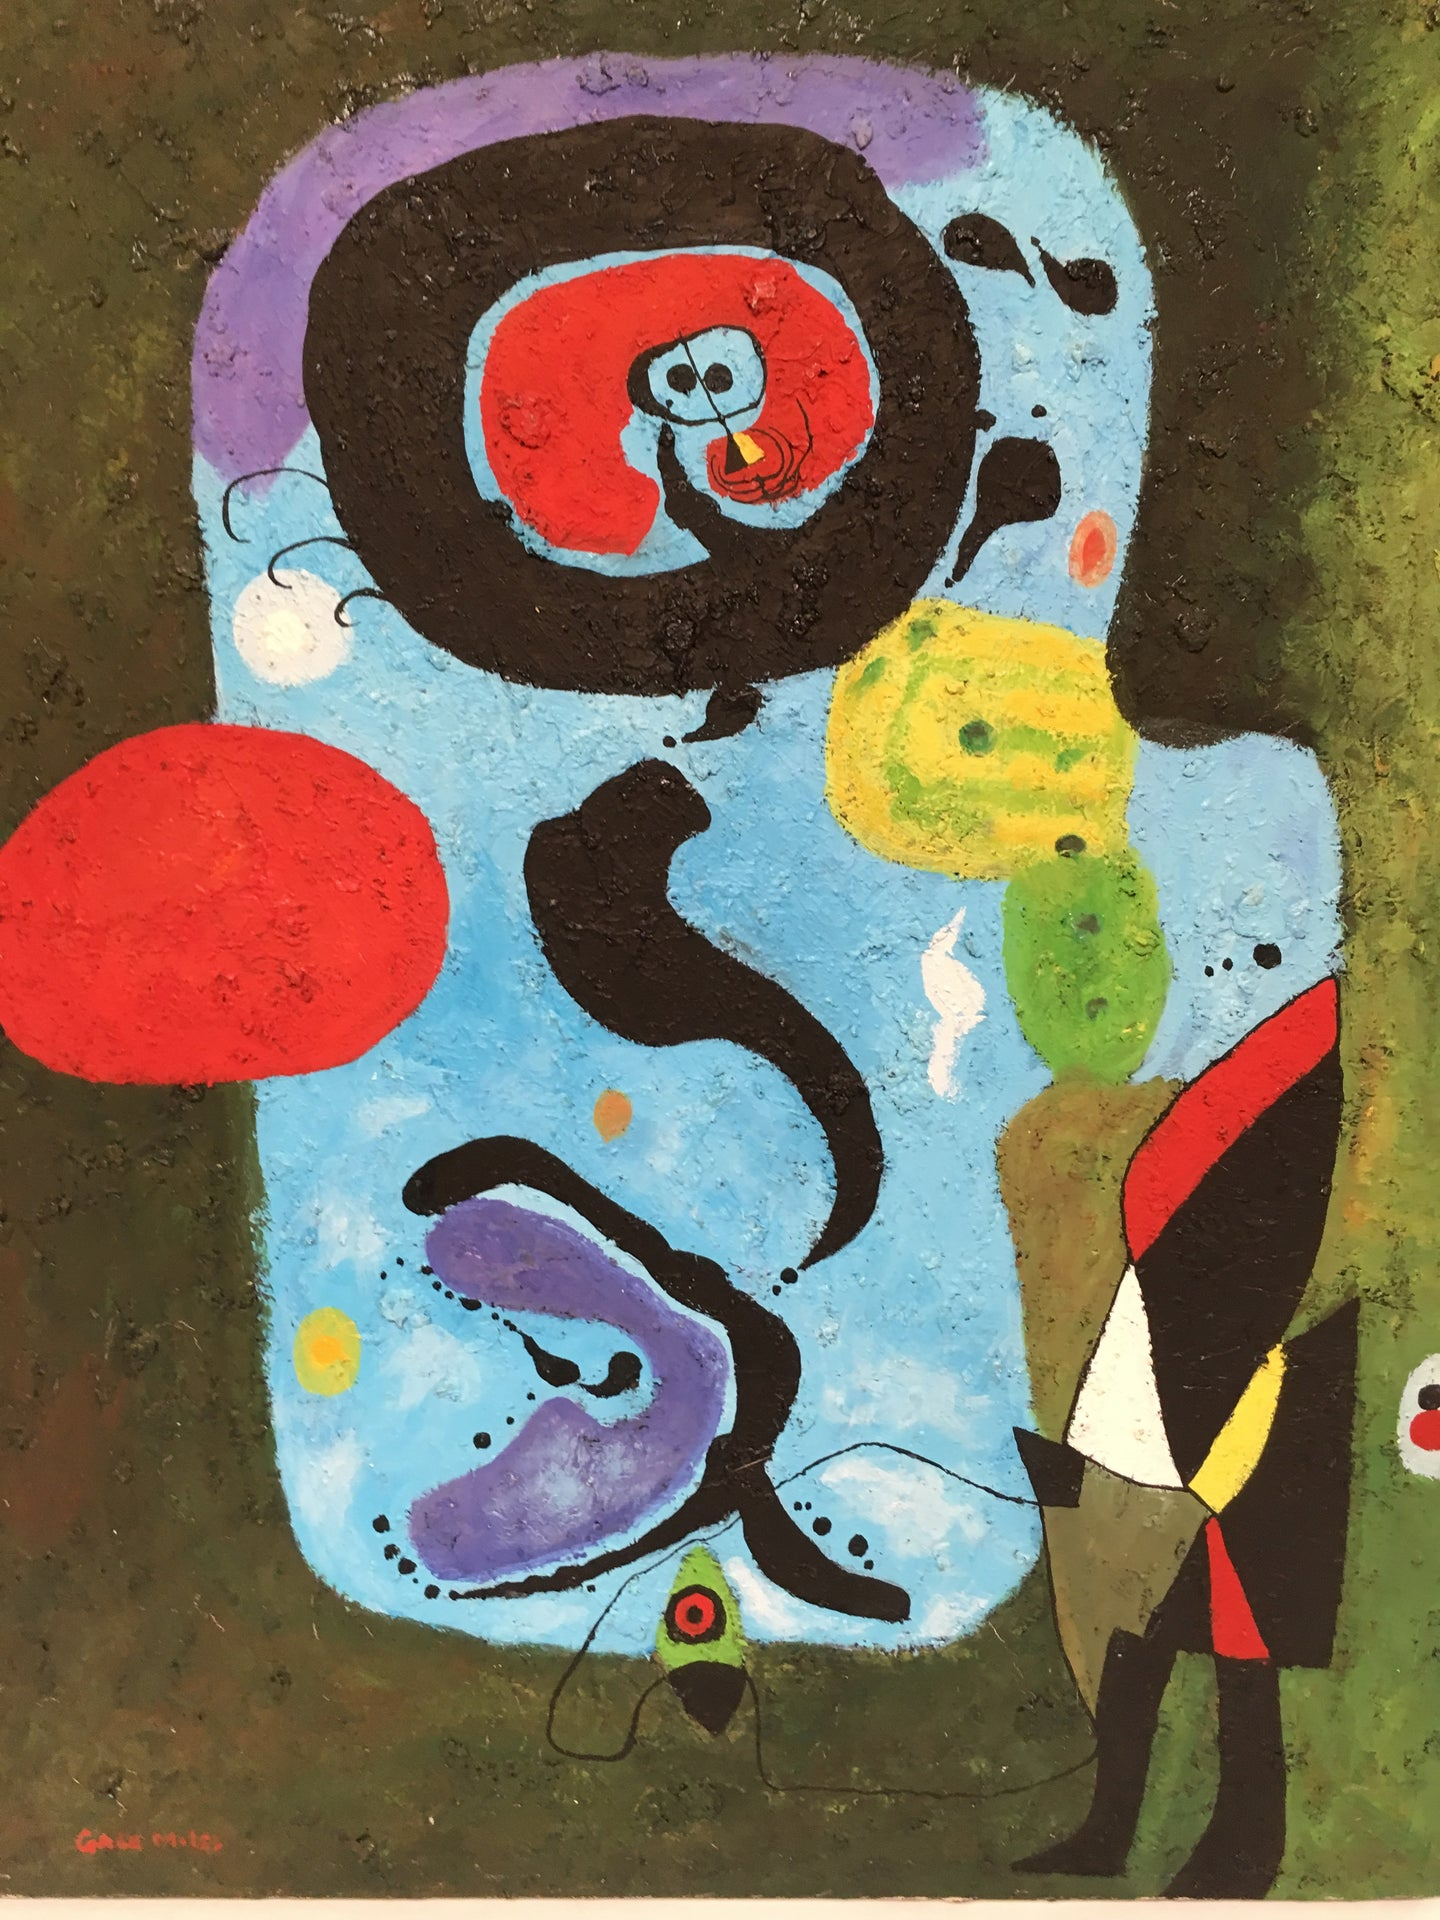 Surrealist Acrylic Painting on Canvas by Gale Miles after Joan Miro